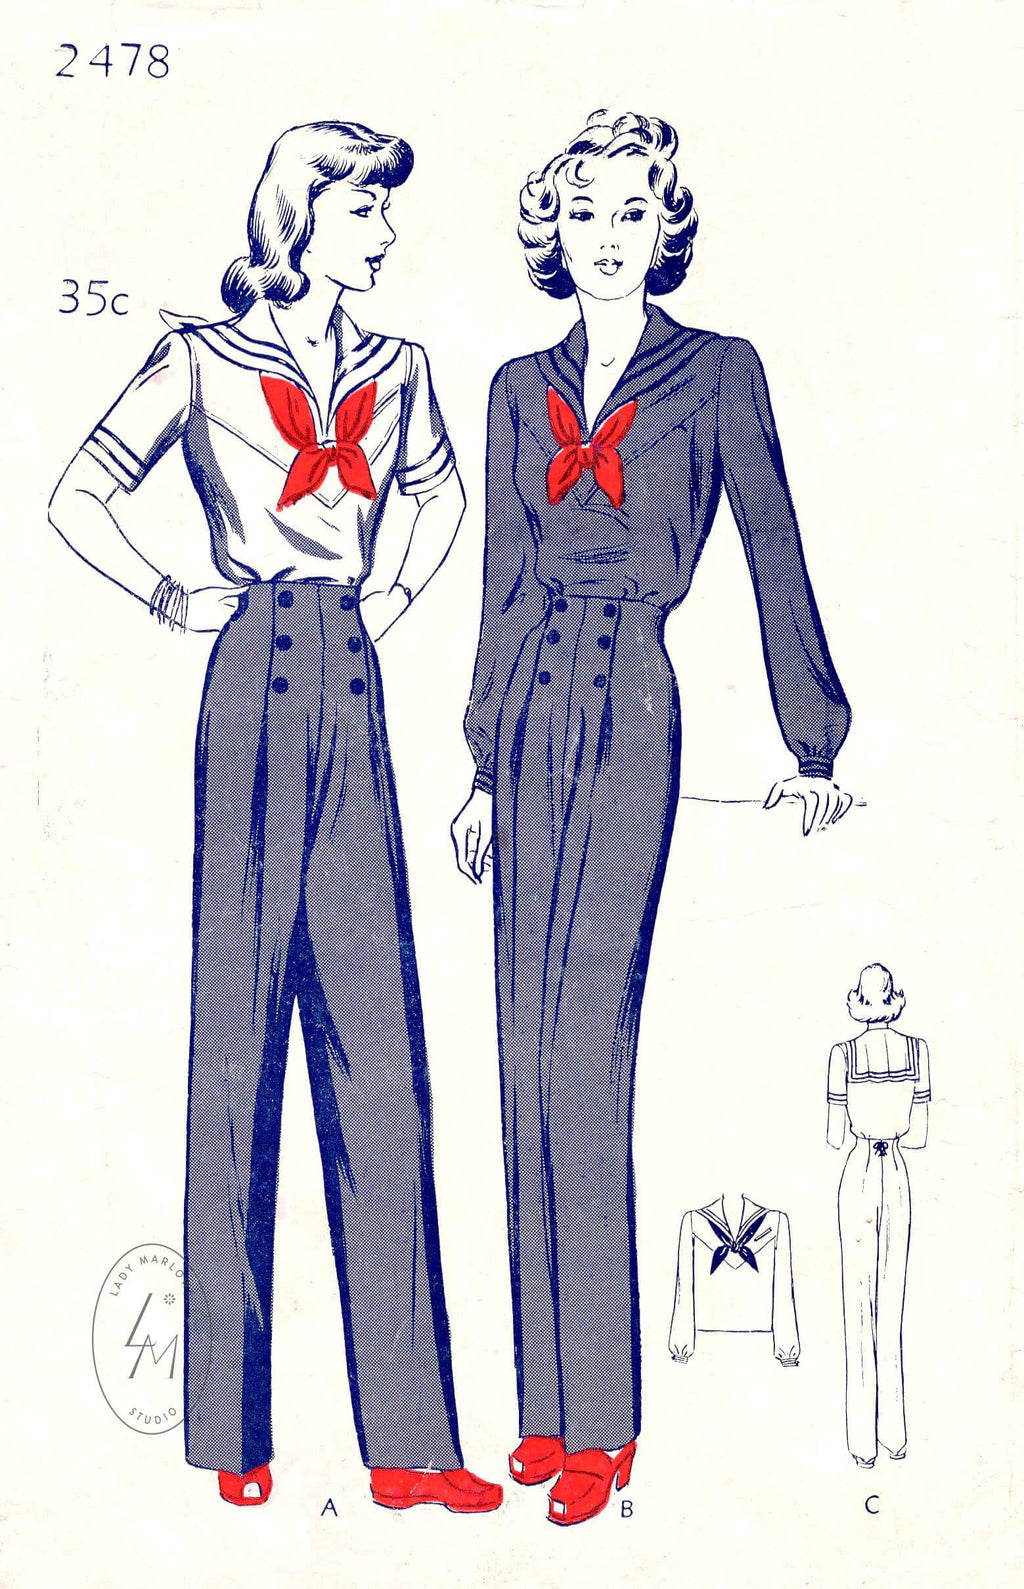 1940s 40s sailor suit blouse 2 styles nautical trousers vintage sewing pattern reproduction Butterick 2478